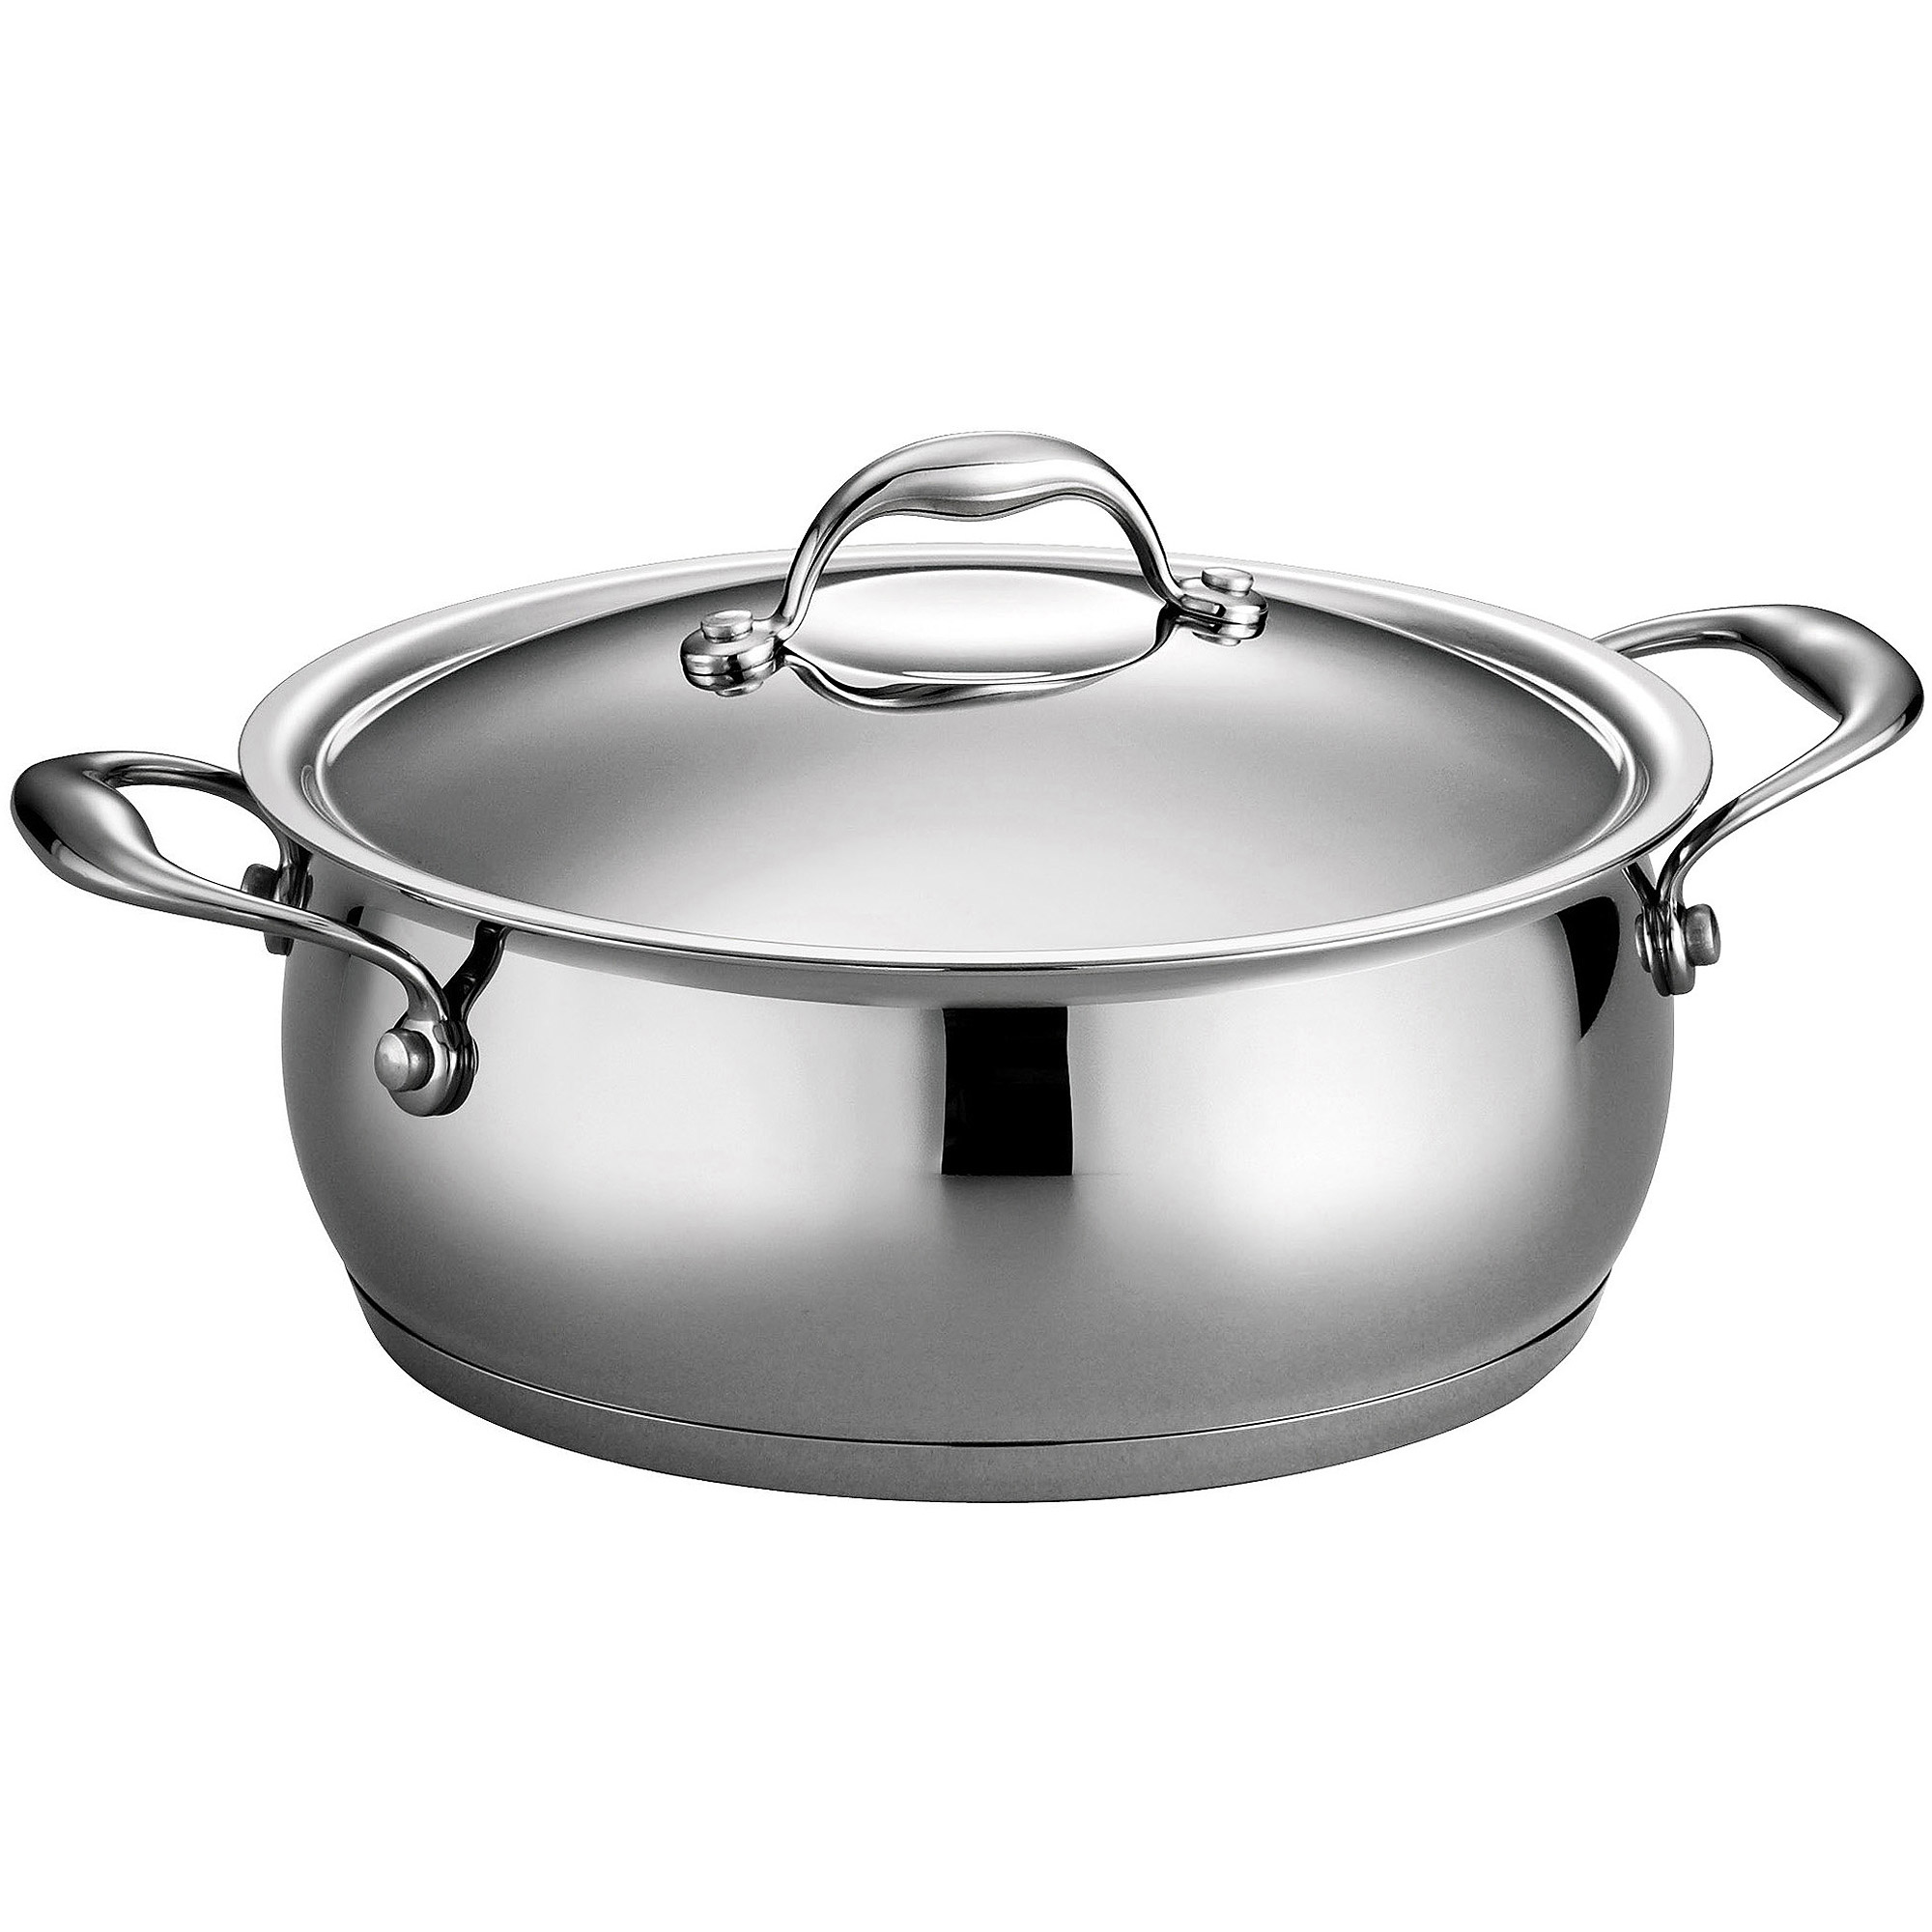 Tramontina Gourmet Enameled Cast Iron Covered Round Dutch Oven ...